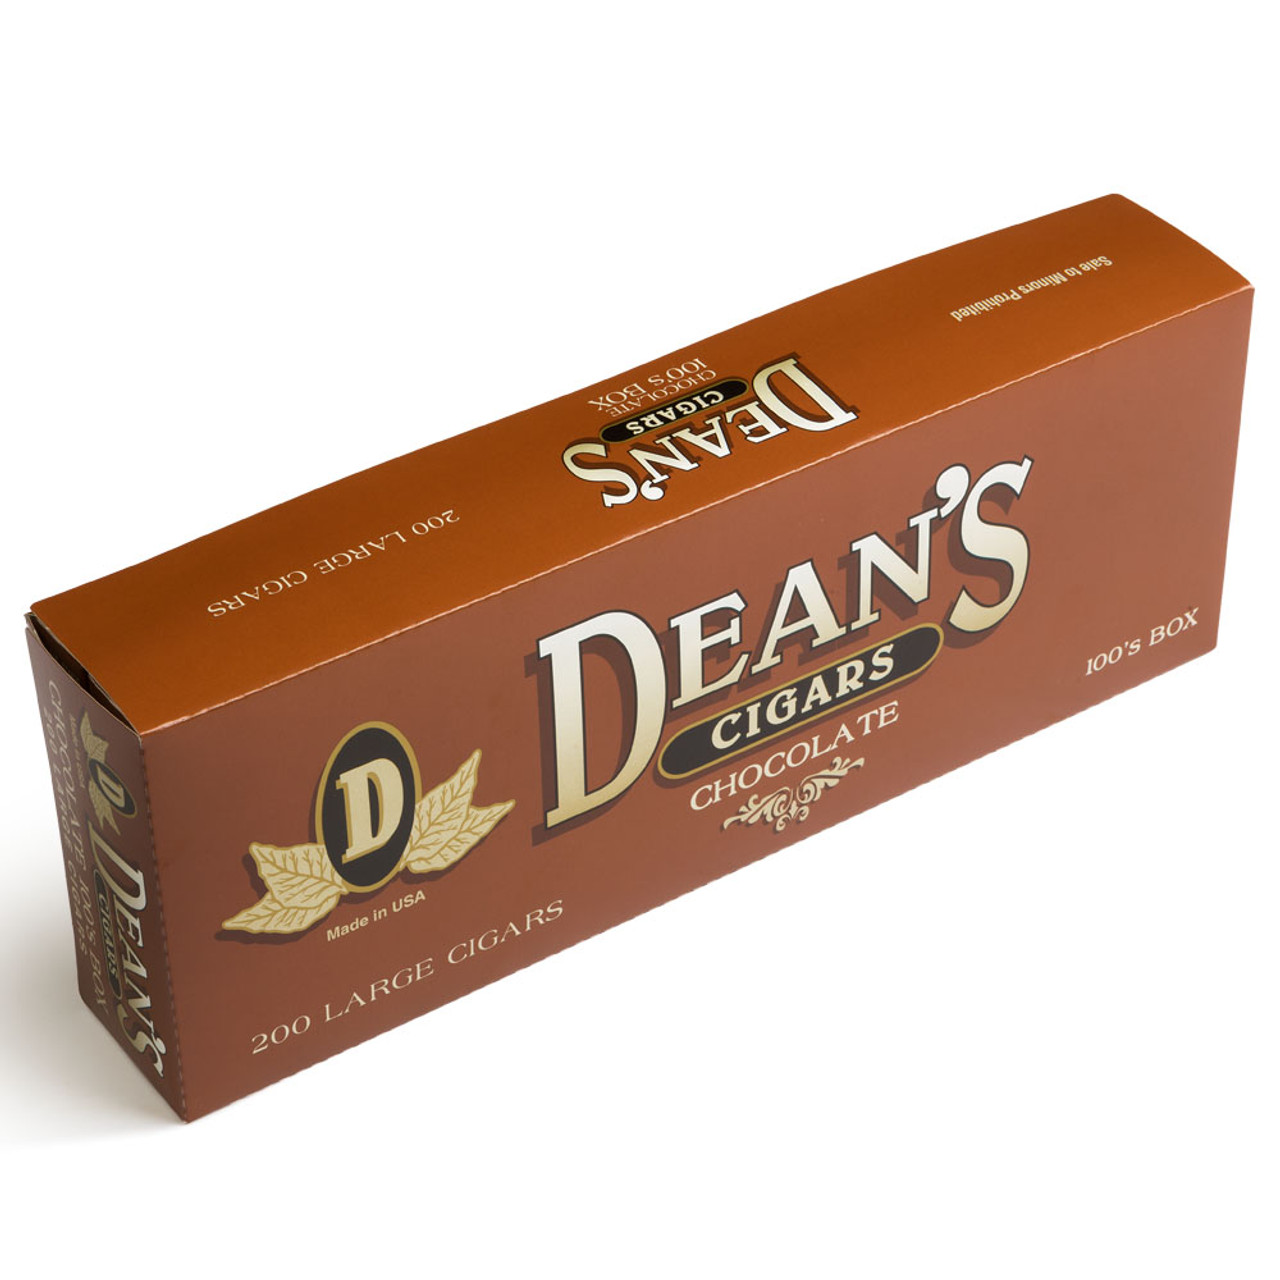 Dean's Filtered Cigars Chocolate Cigars - 3.87 x 20 (10 Packs of 20 (200 Total))